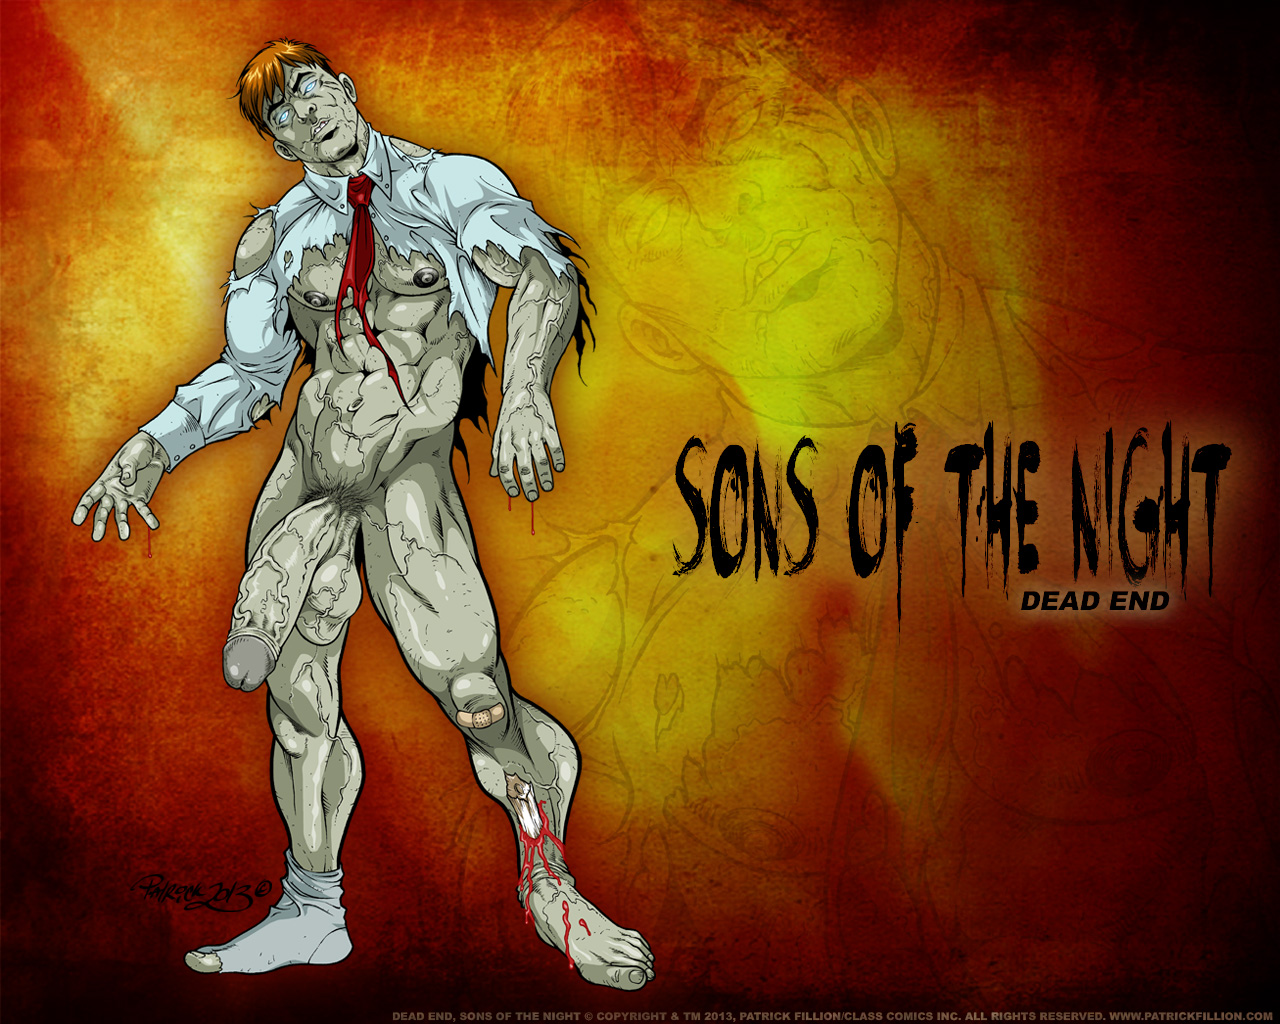 DEADENDsonsofthenight1280x1024